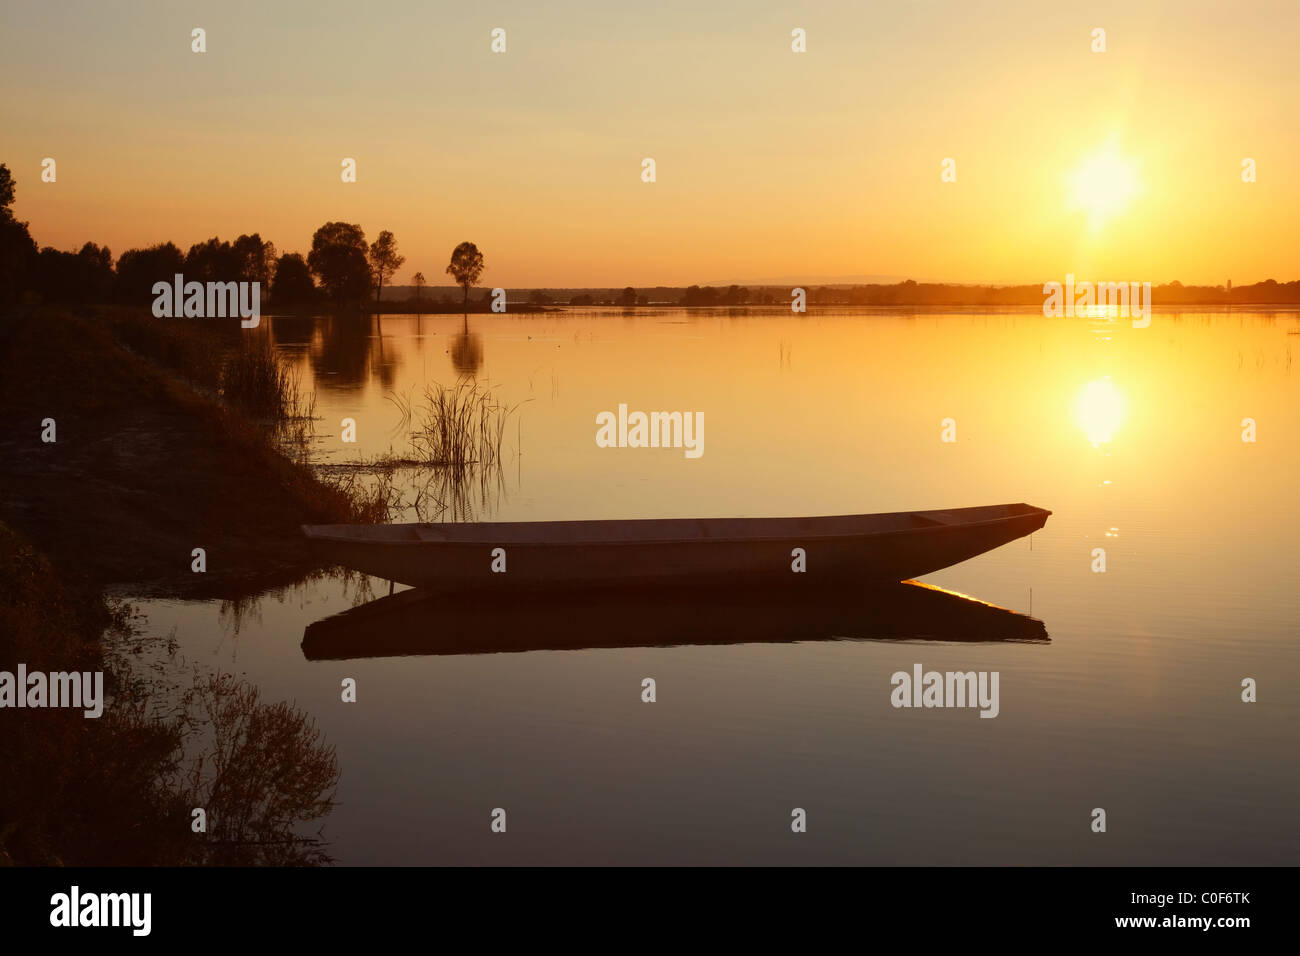 River boat at sunset. - Stock Image